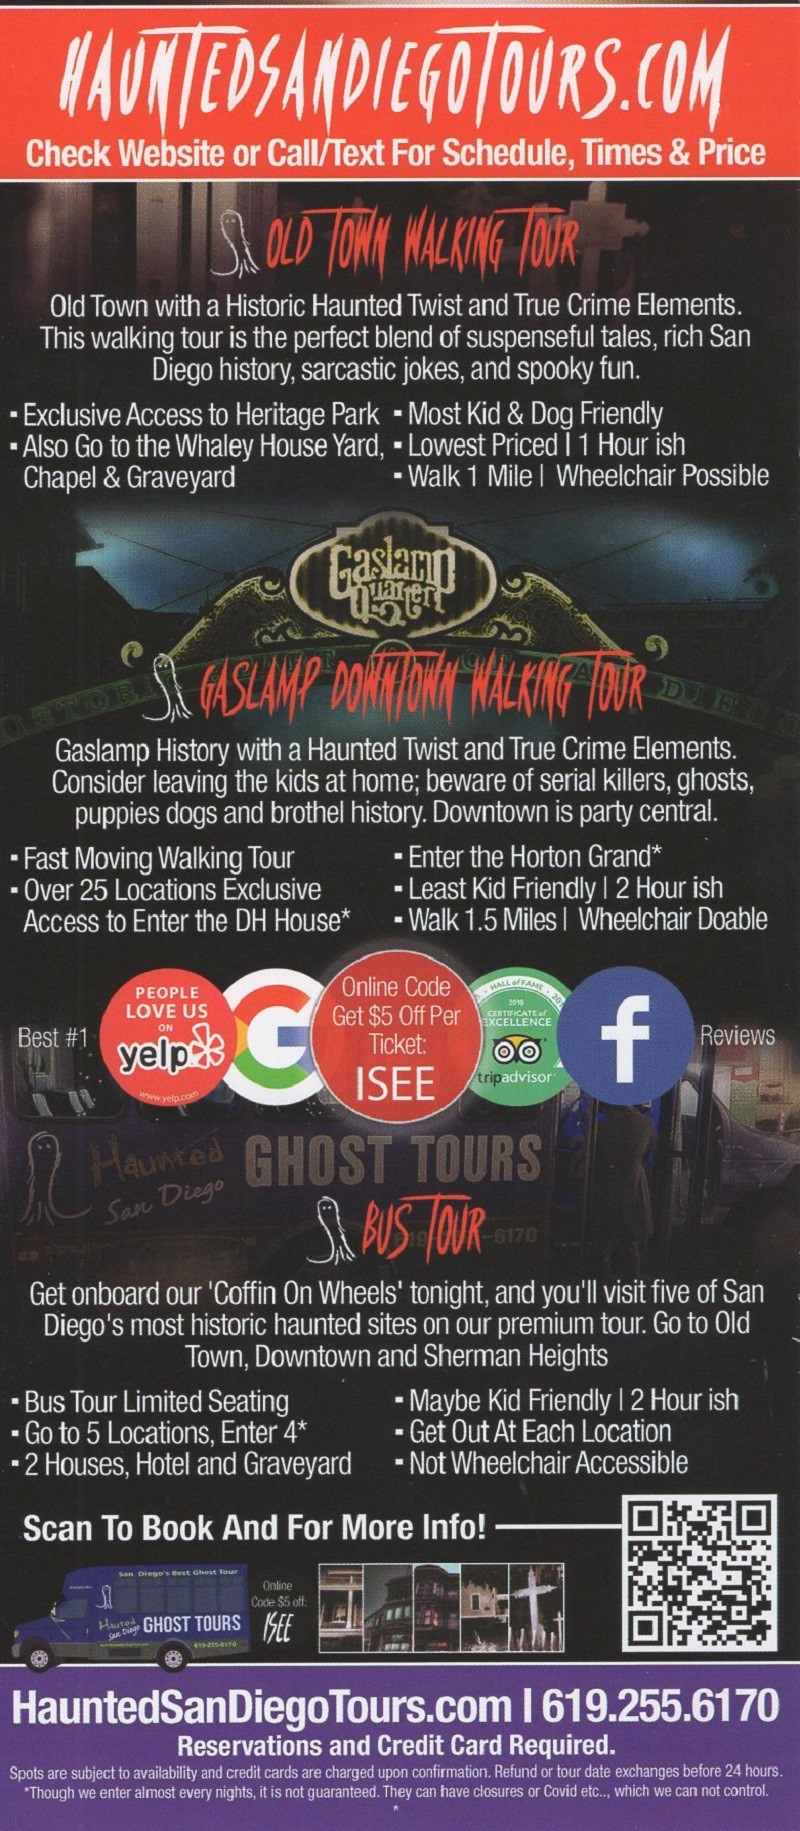 Haunted San Diego Tours brochure thumbnail